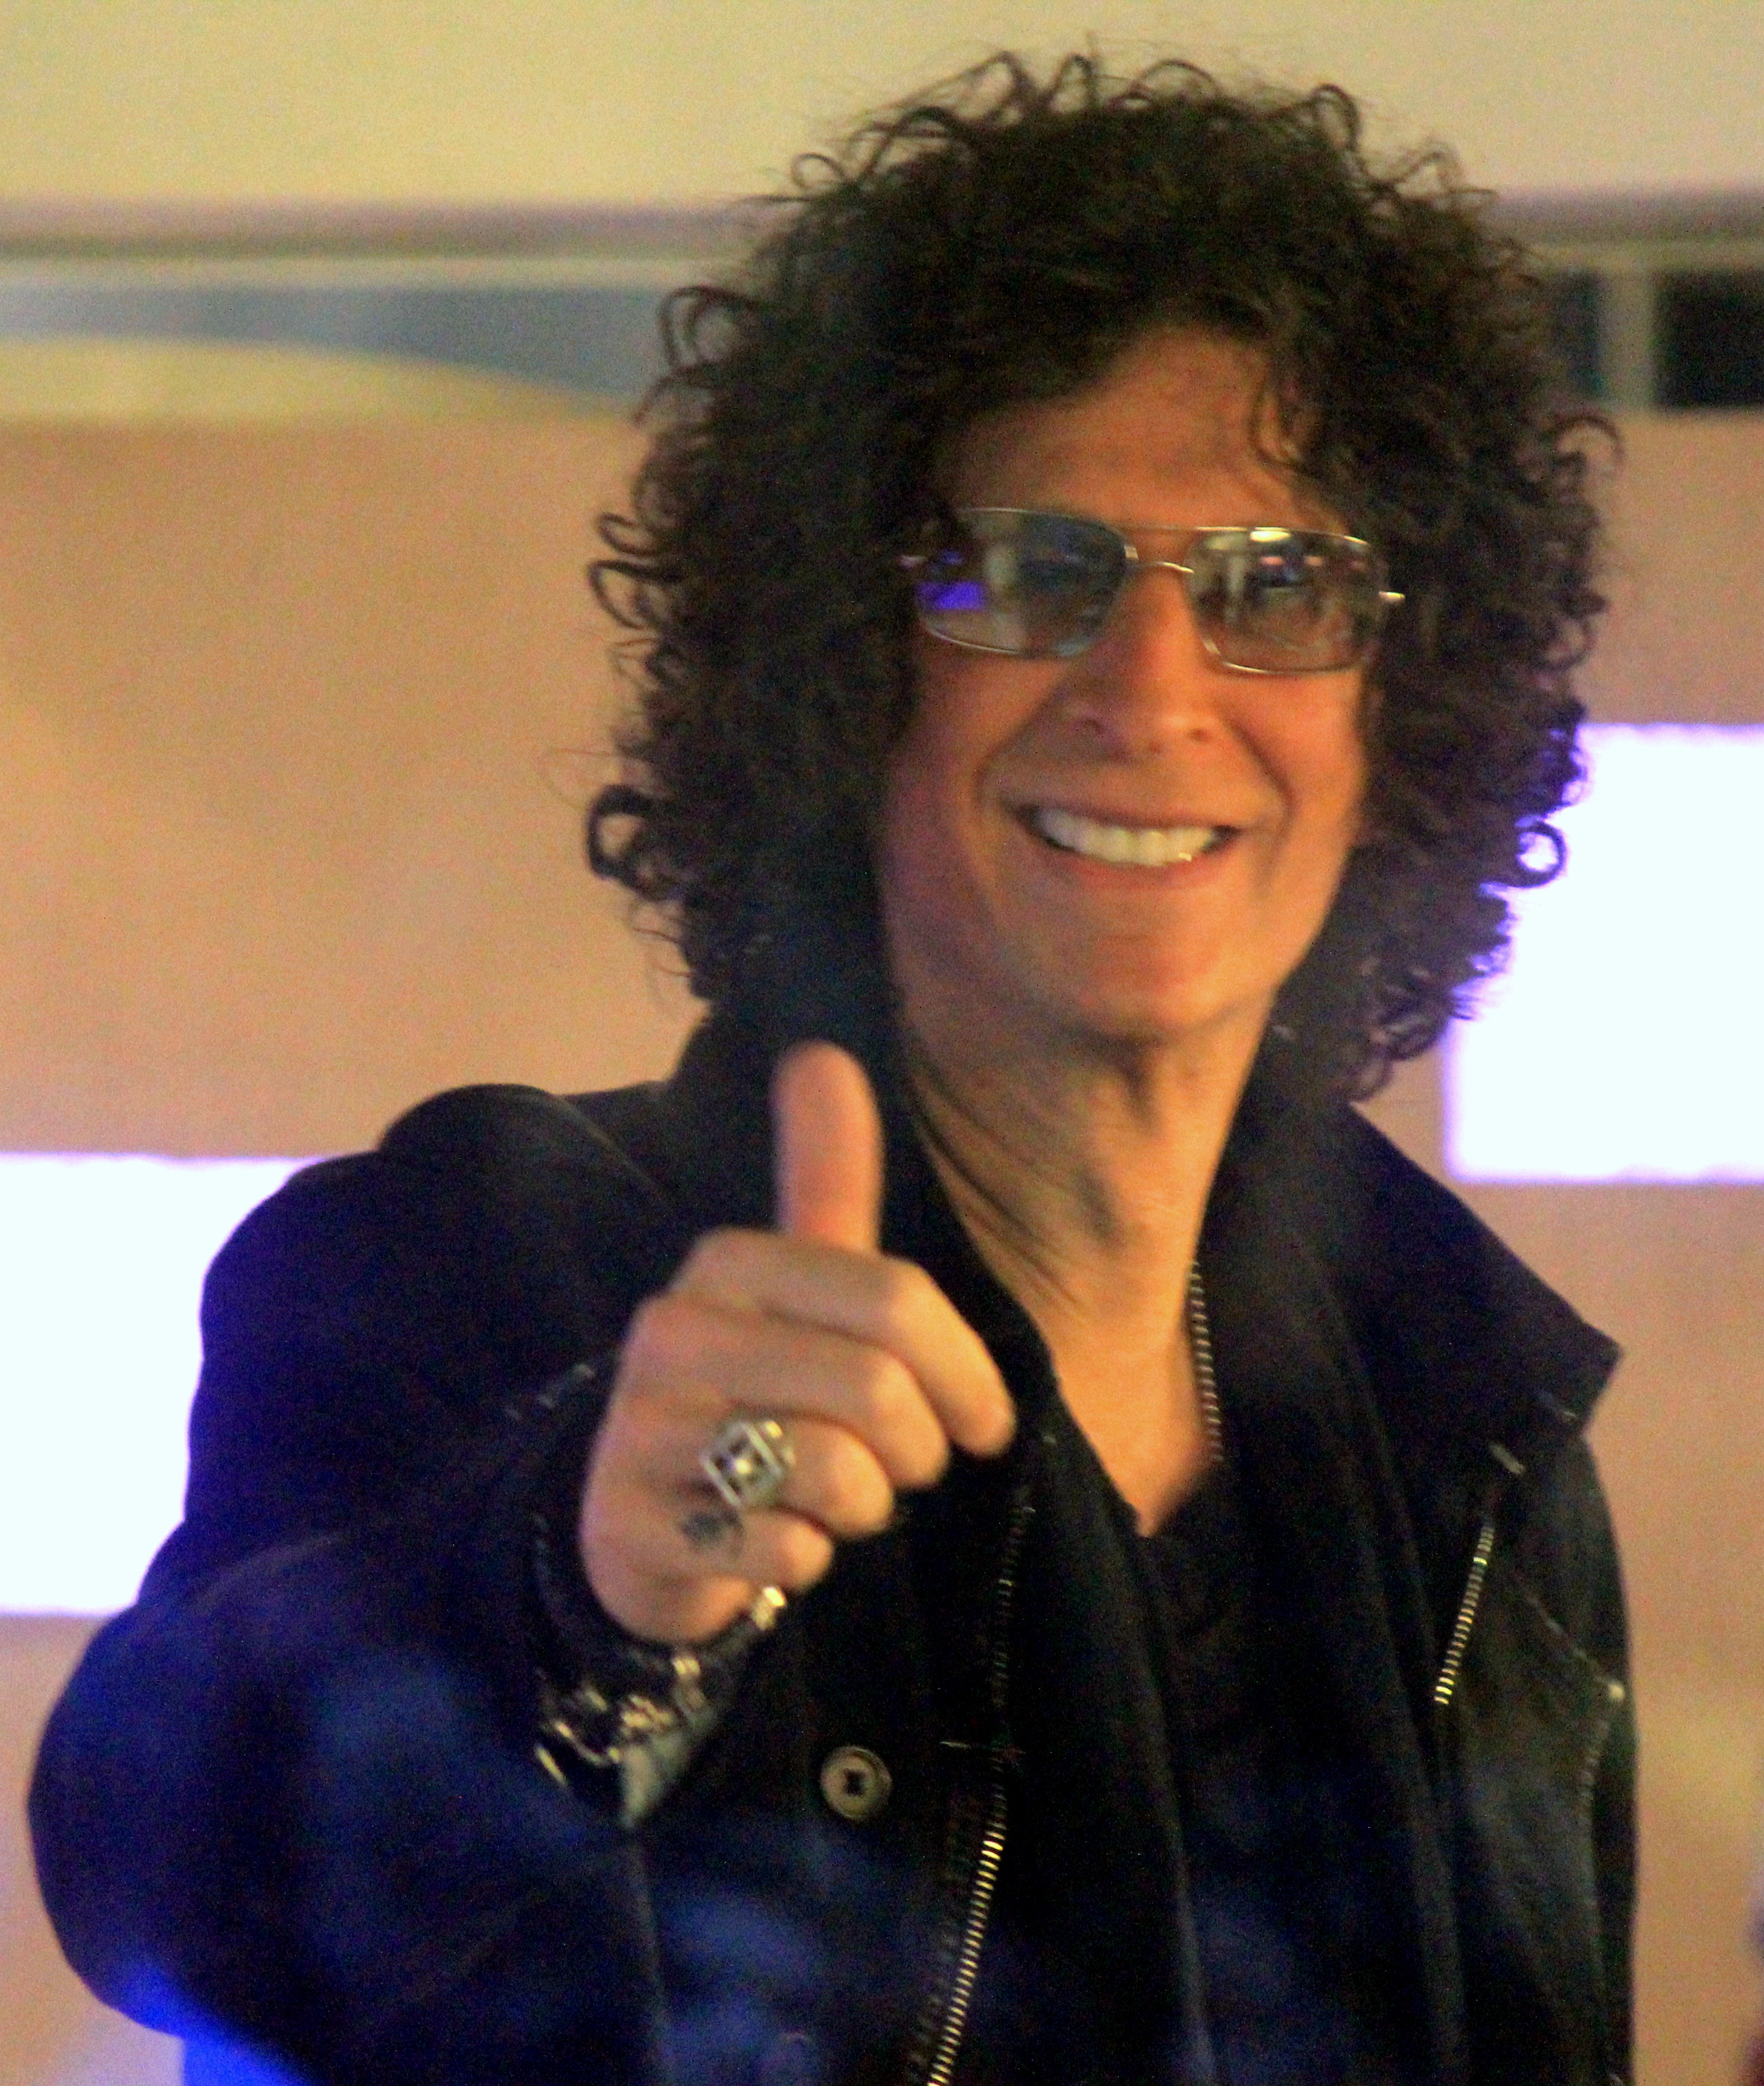 Howard Stern gives a thumbs up